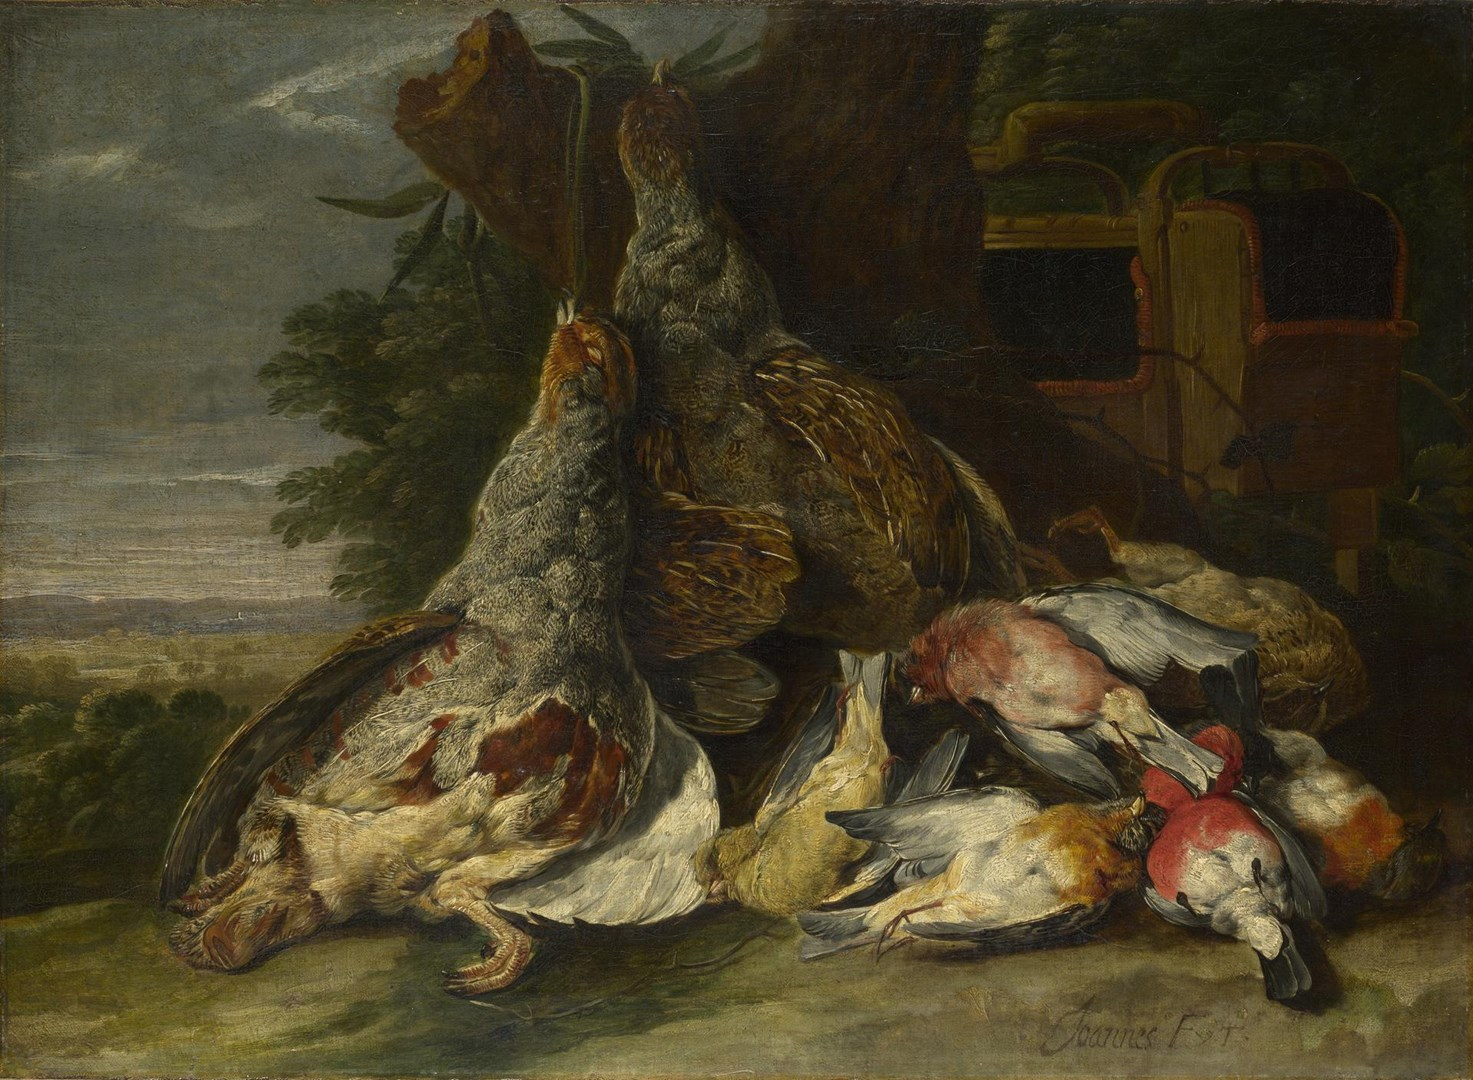 Dead Birds in a Landscape by Jan Fyt